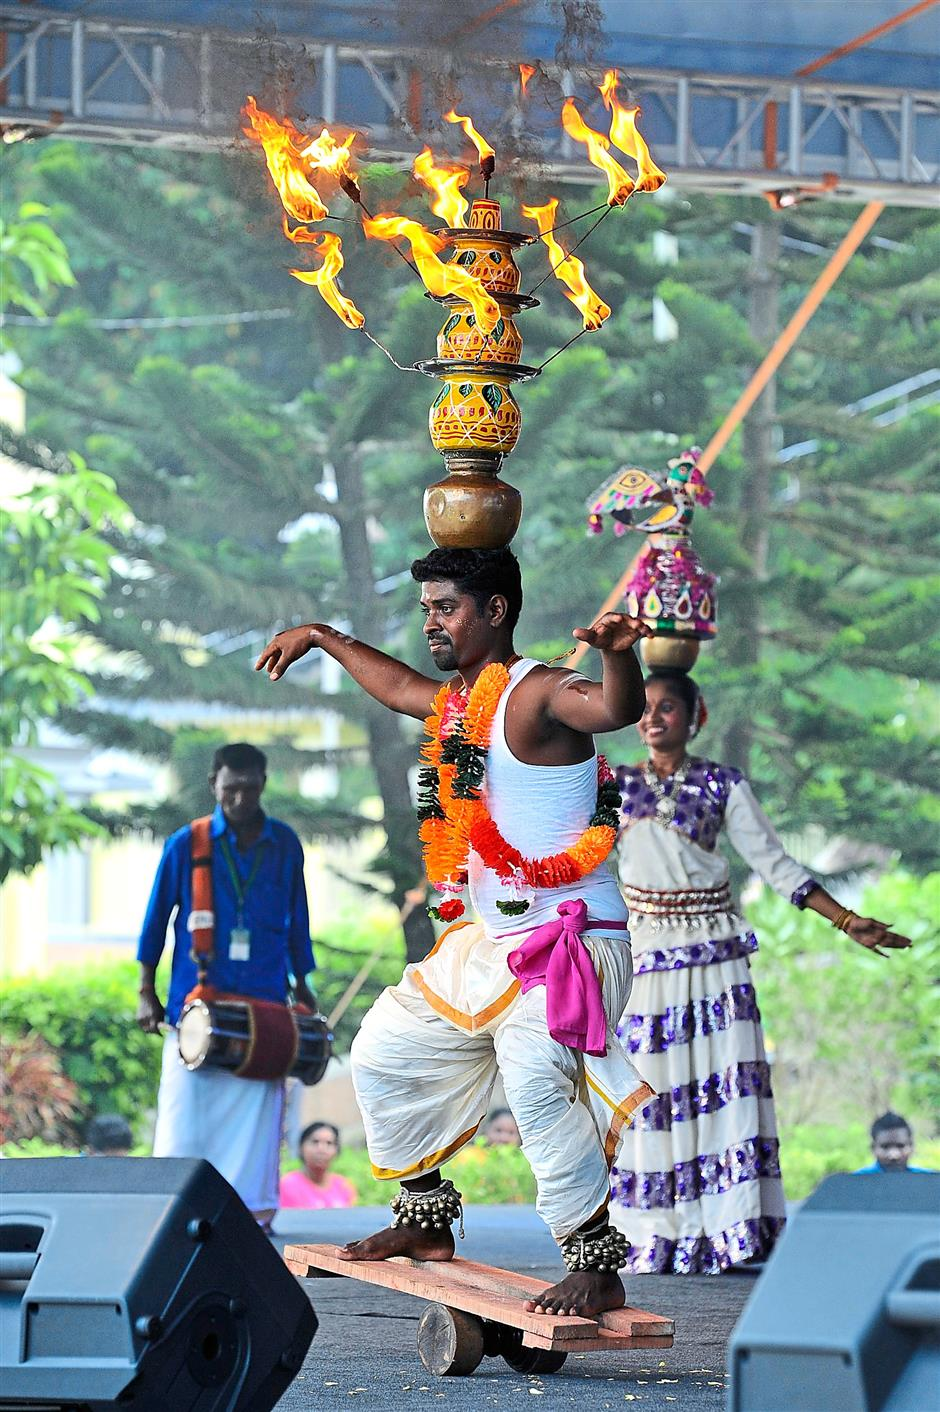 Easy does it: A Karagatam dancer balancing 'claypots of fire' on his head during the event.